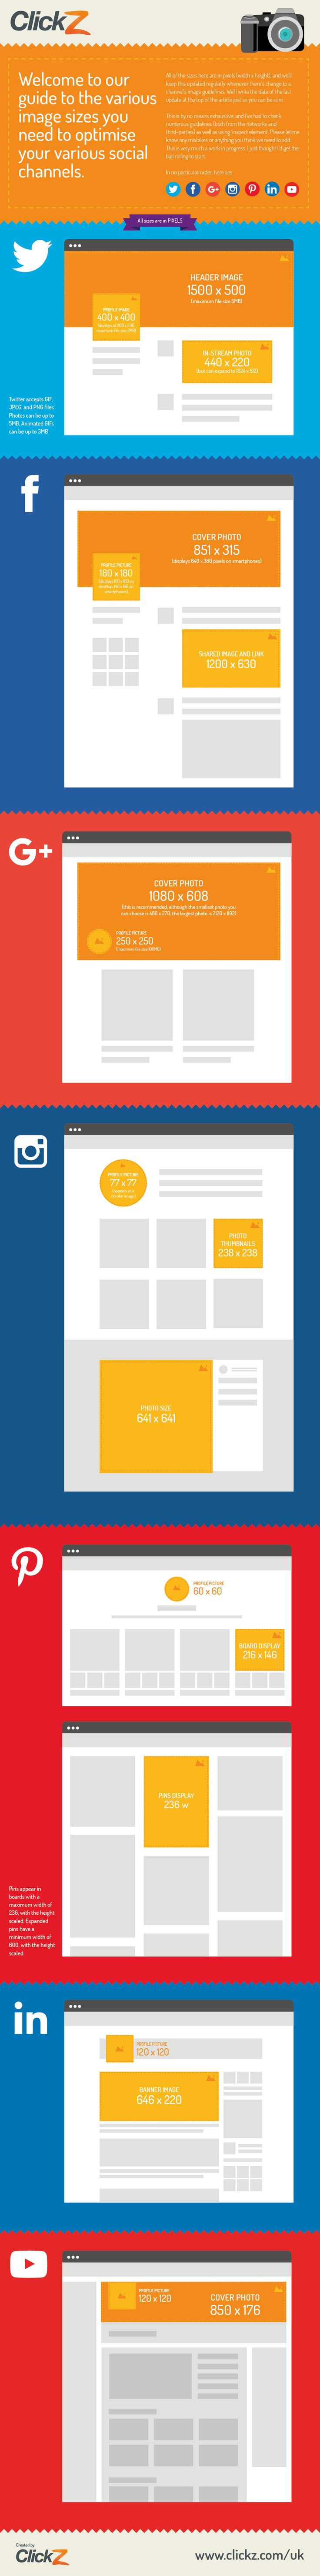 The very handy up-to-date social media image size guide